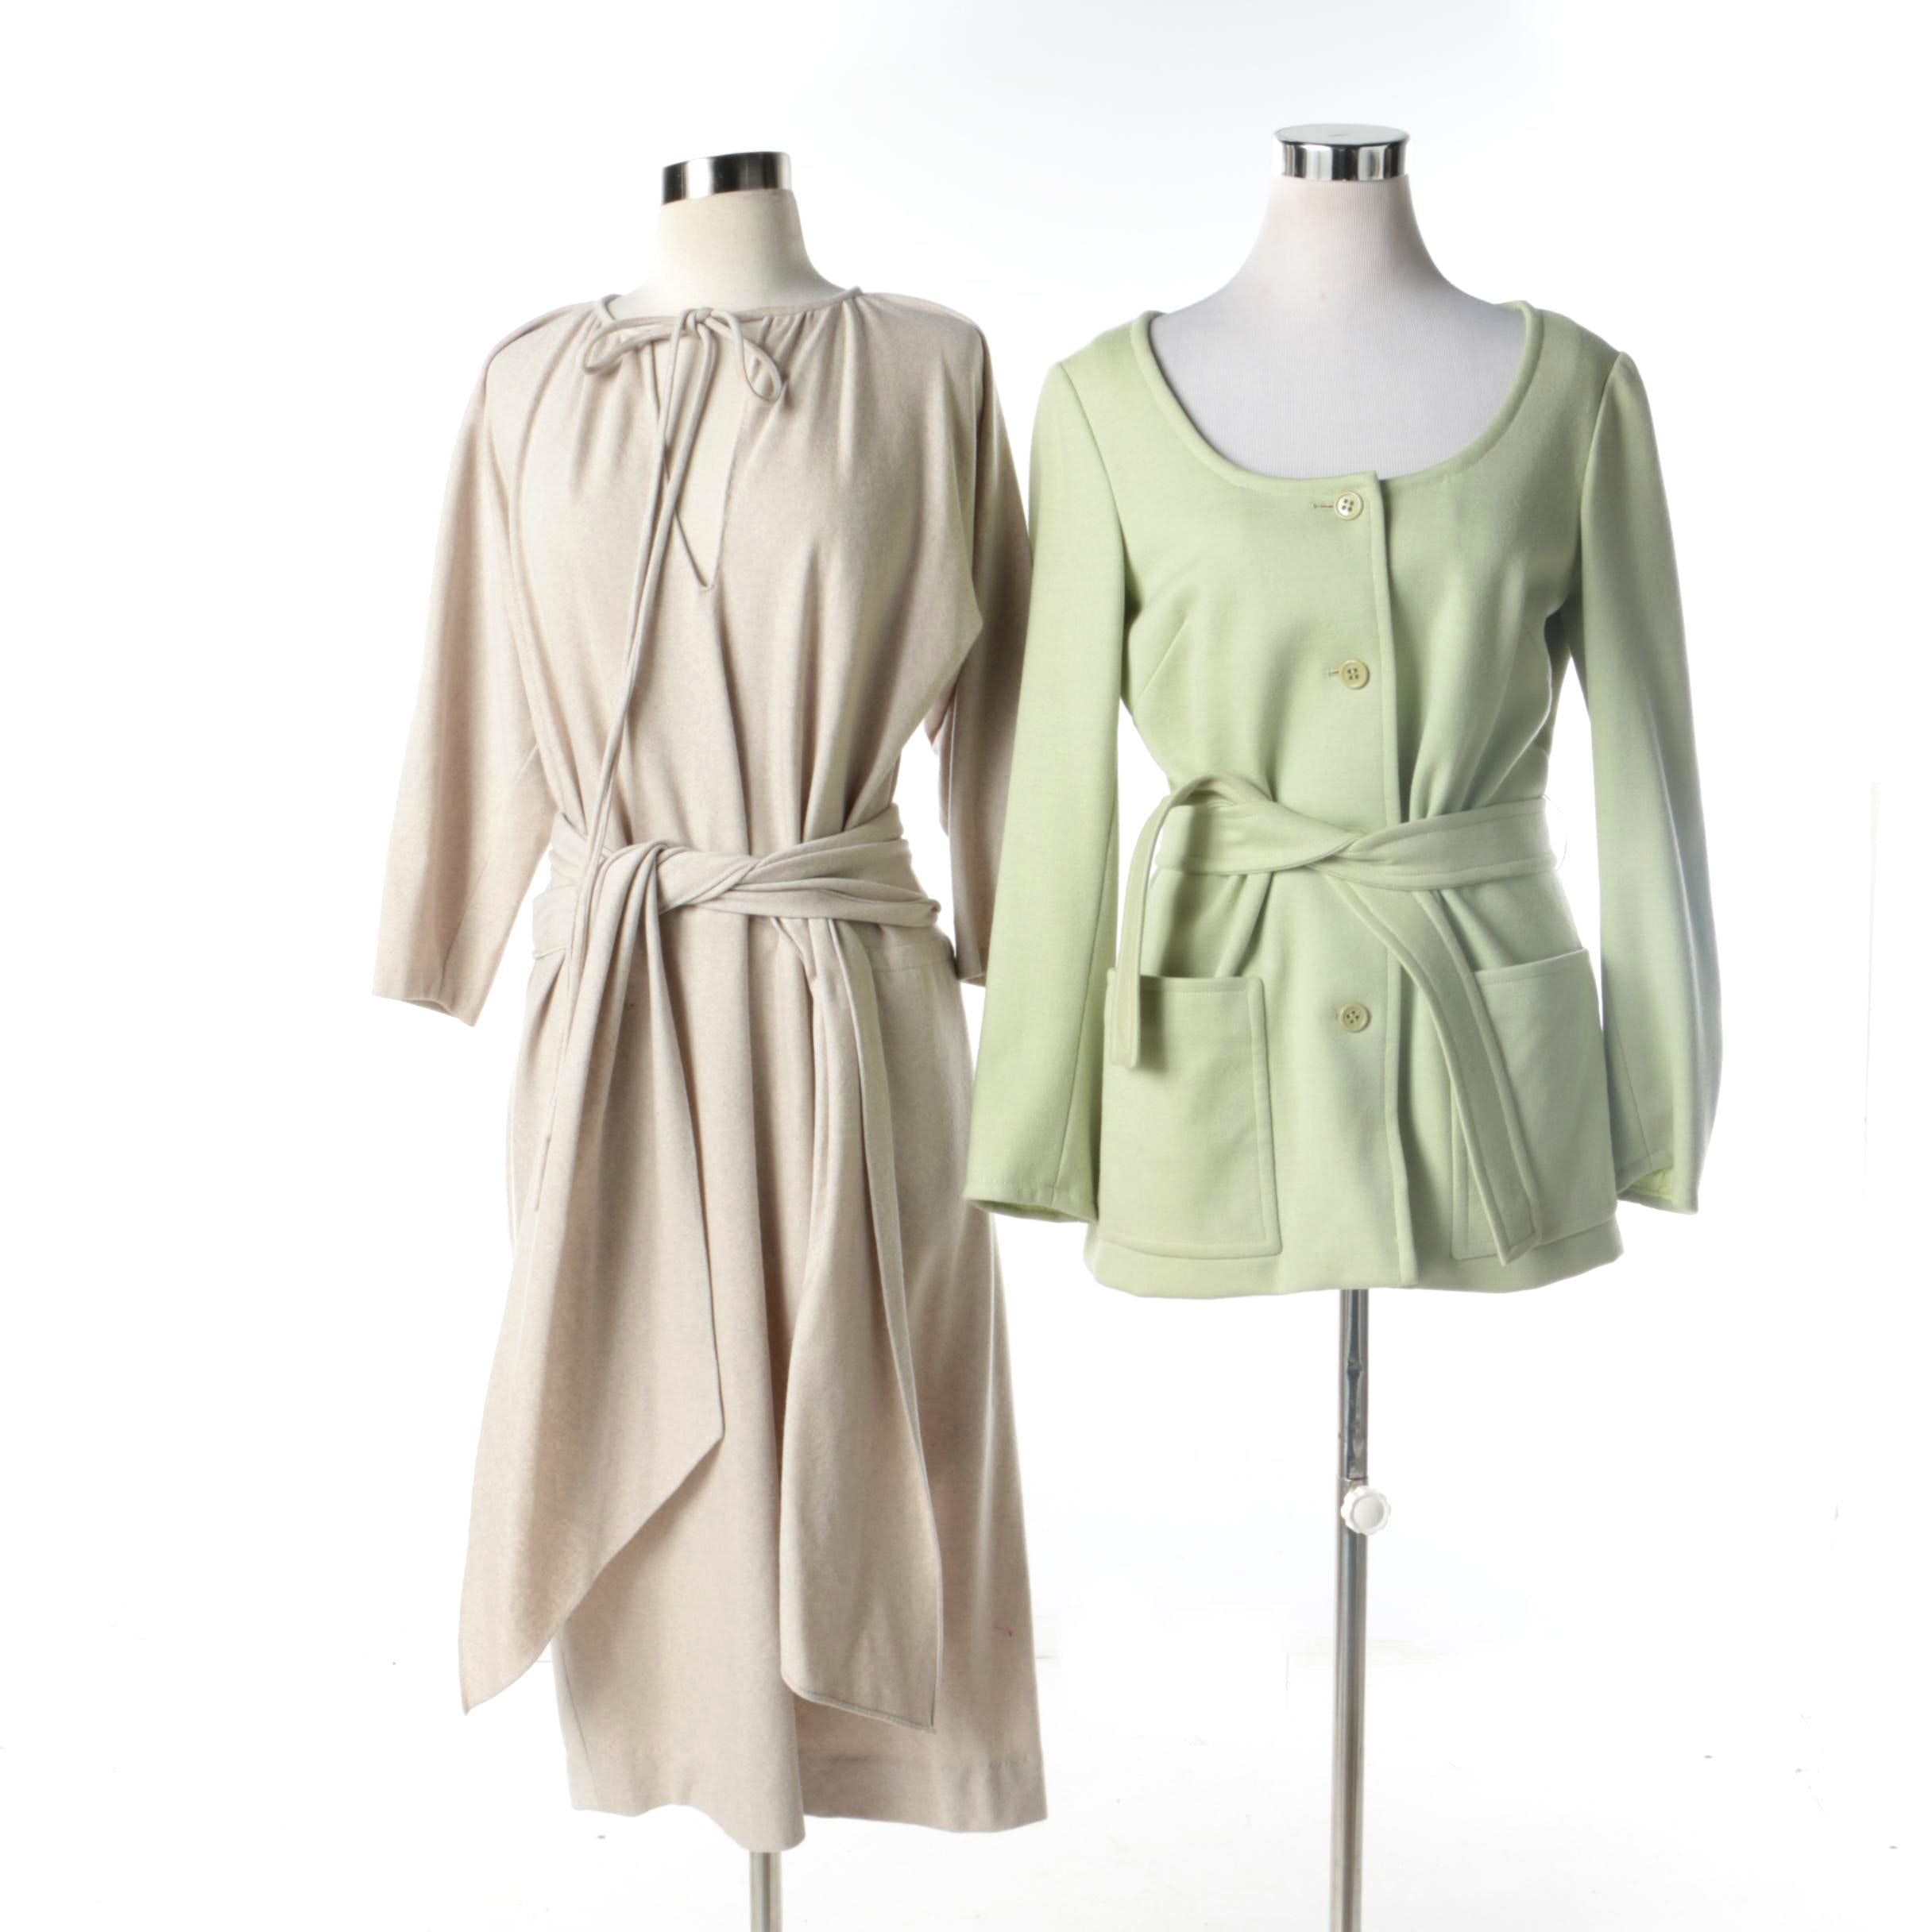 1970s Vintage Halston Spring Green Jacket and Oatmeal Midi Dress